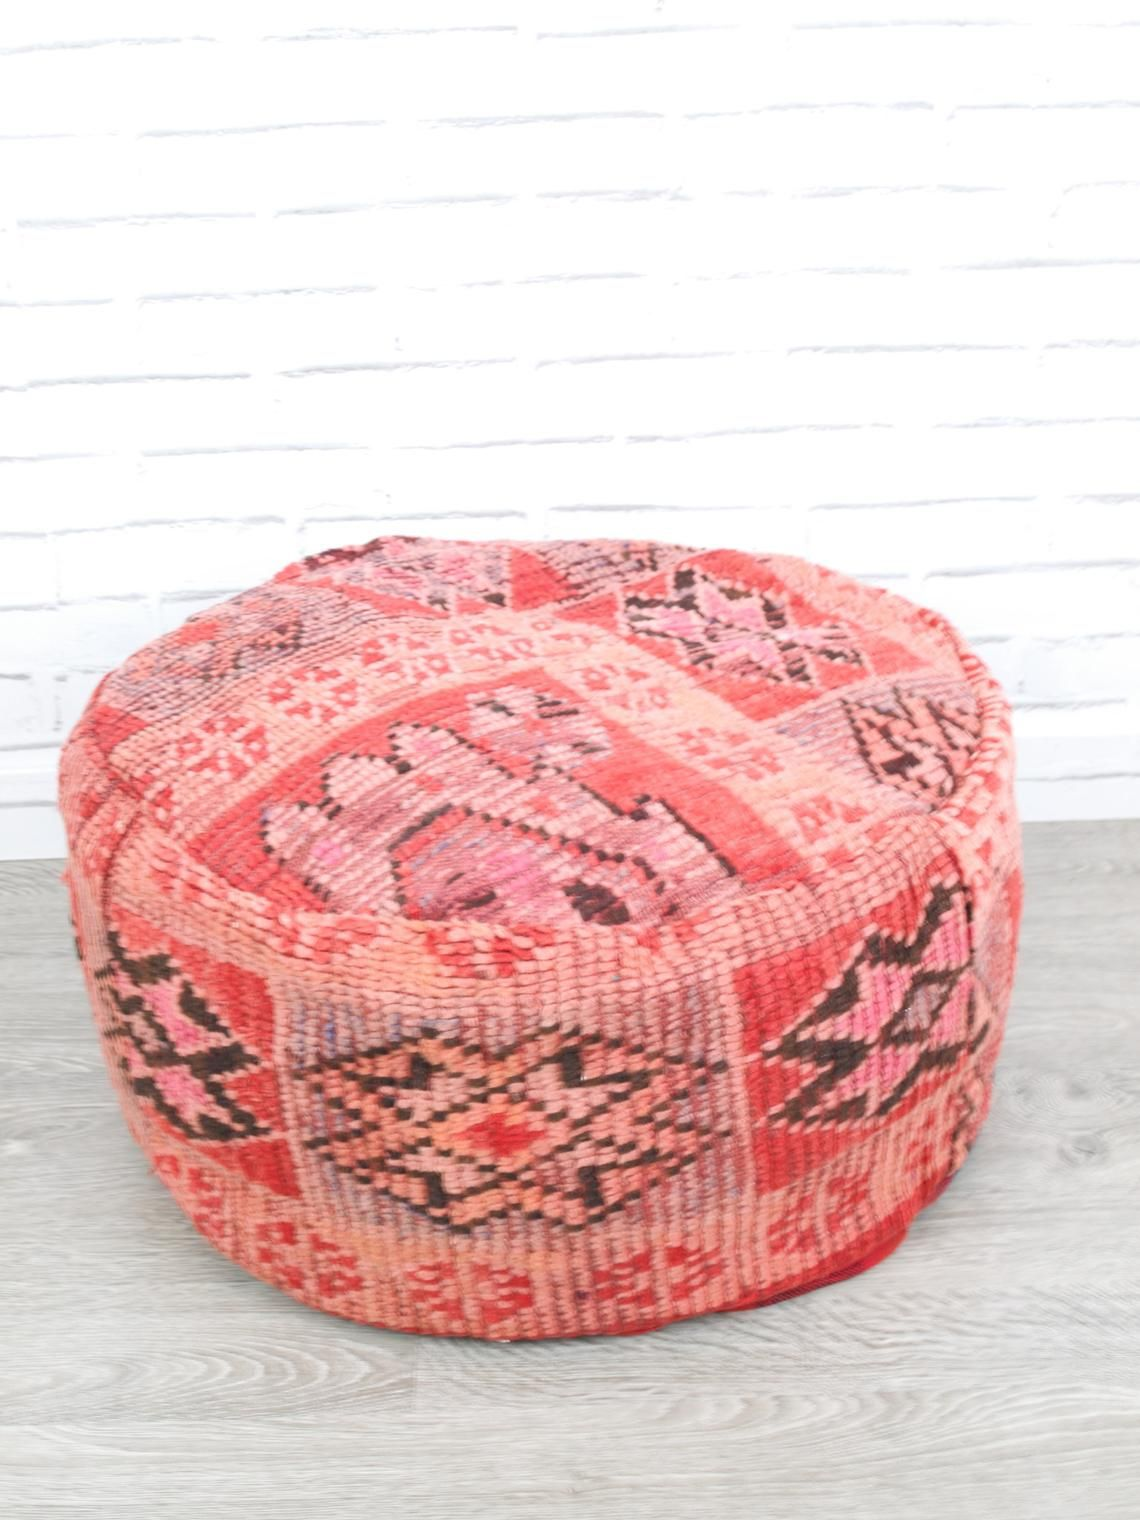 Boujaad Pouf cover Moroccan Floor Pillow Pouf from vintage